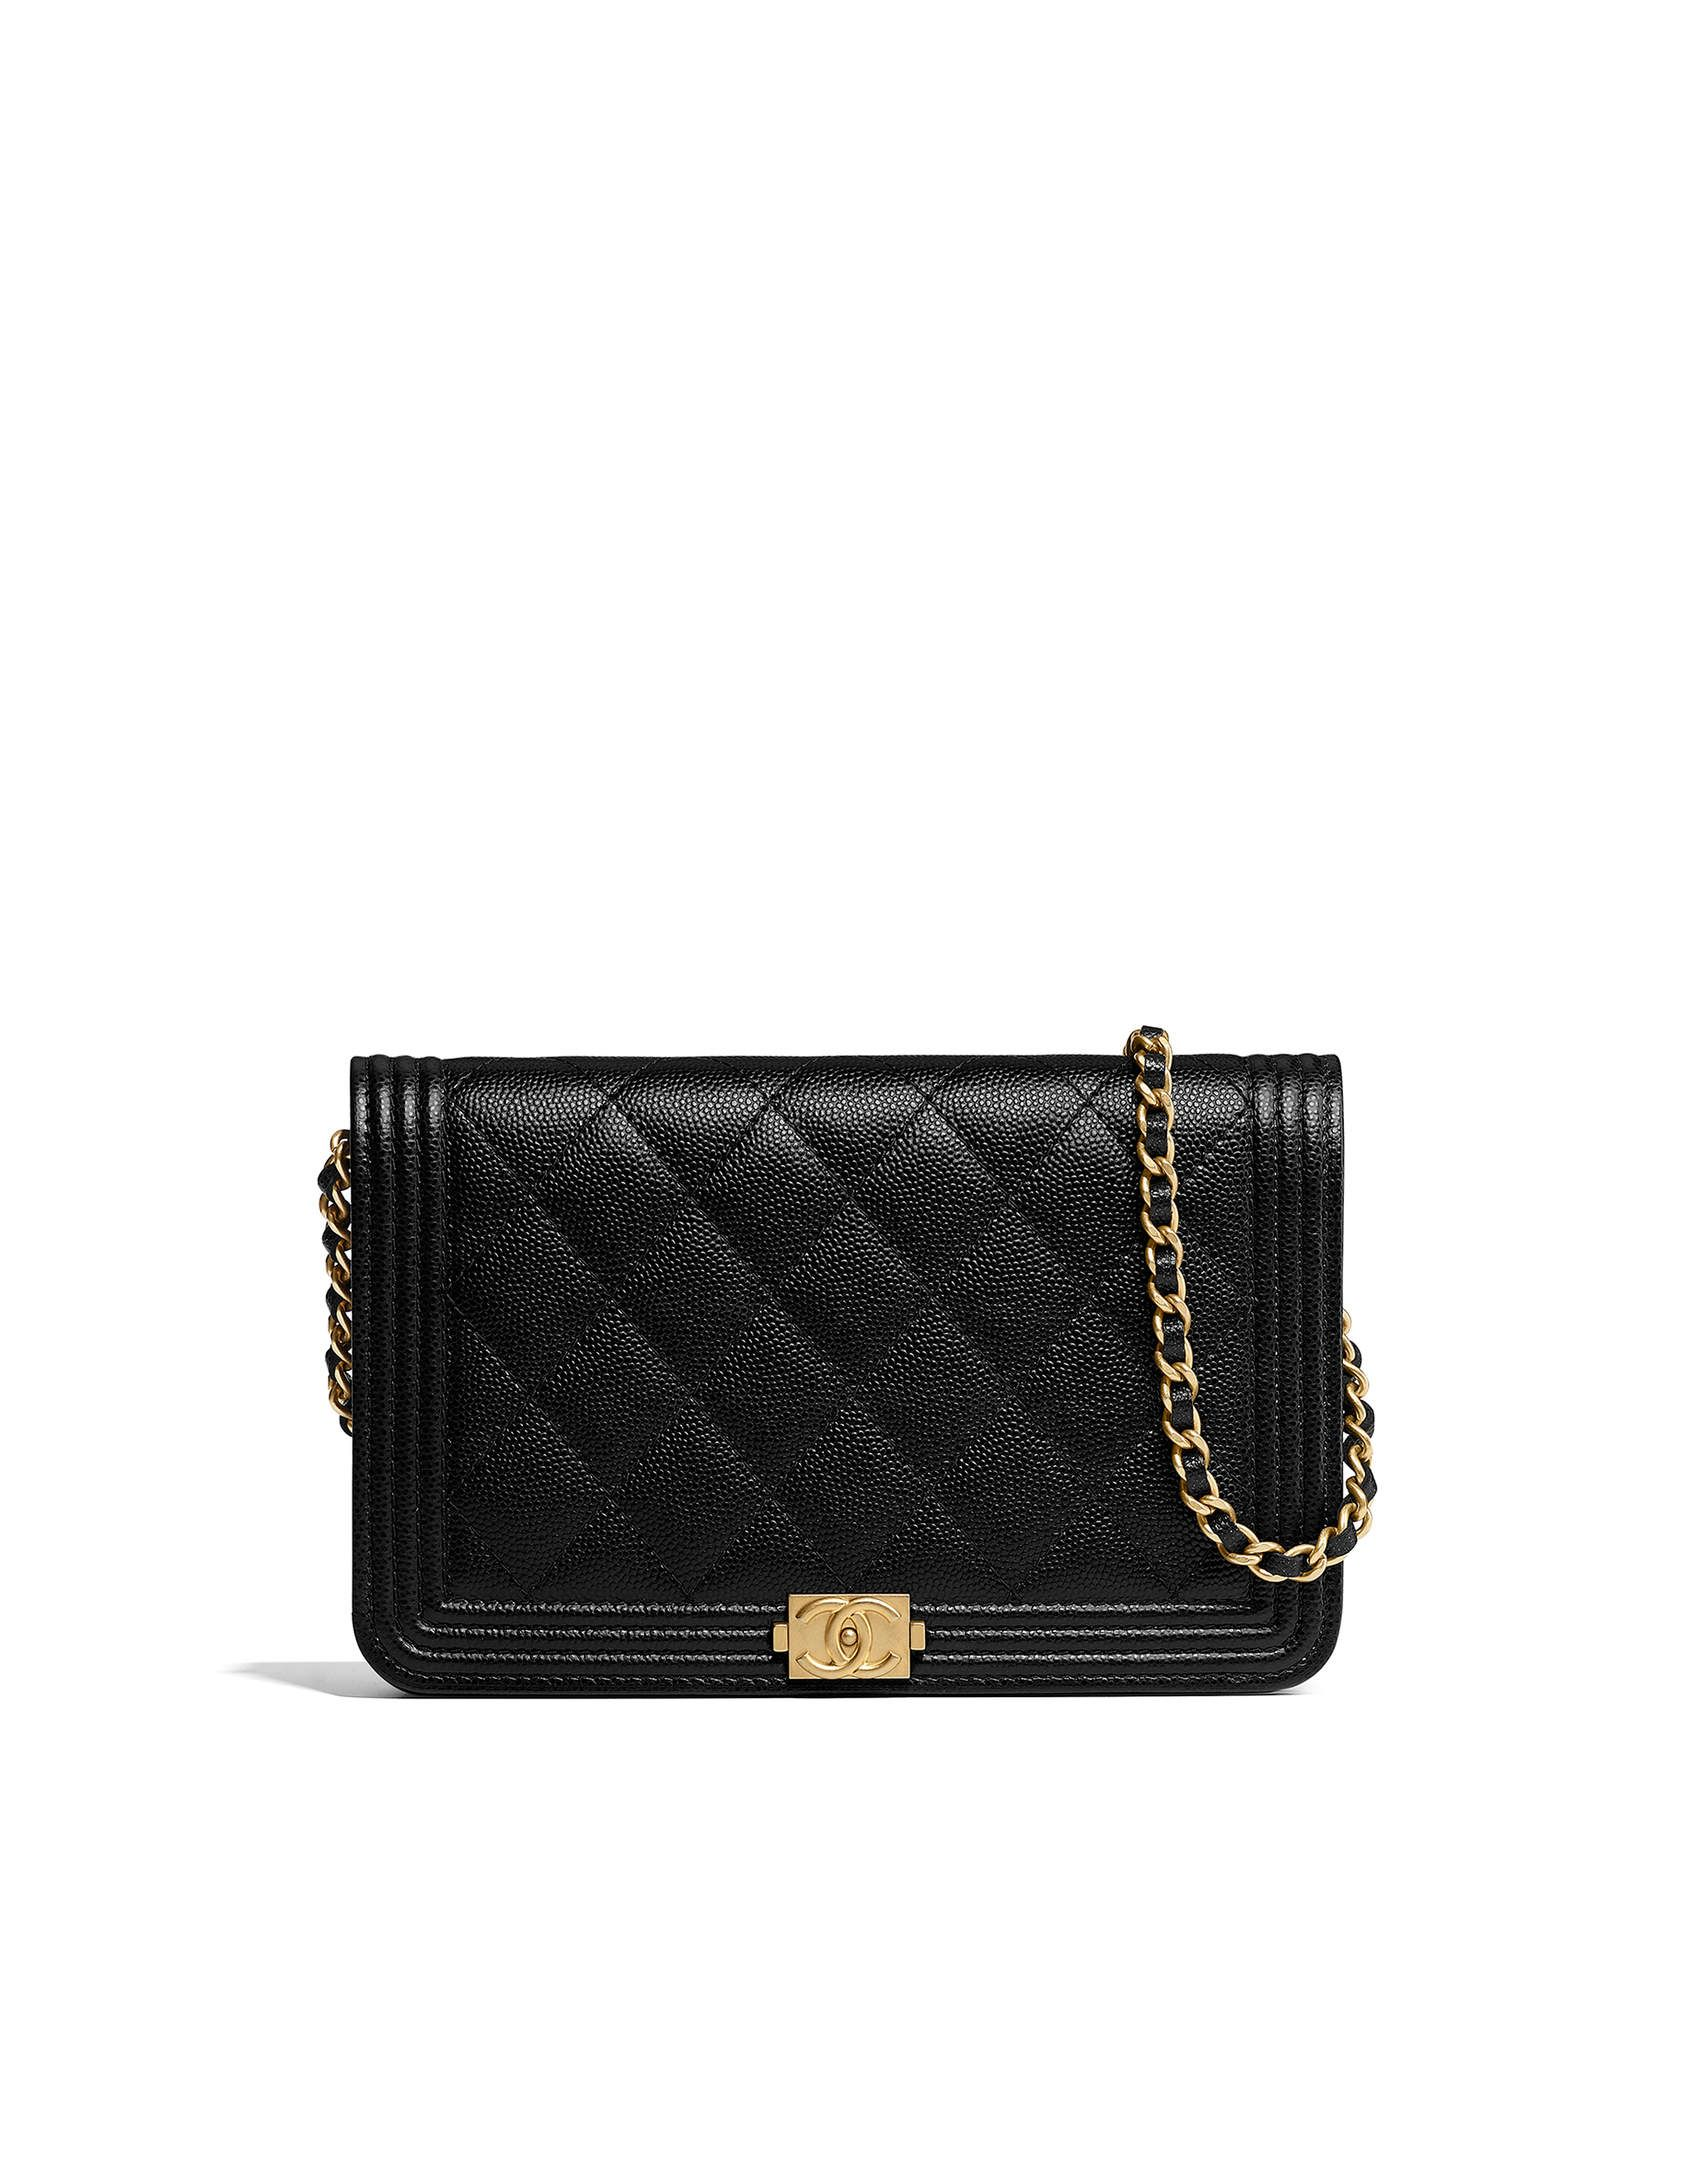 15a4941db7c2 BOY CHANEL wallet on chain, grained calfskin & gold-tone metal-black -  CHANEL $2500